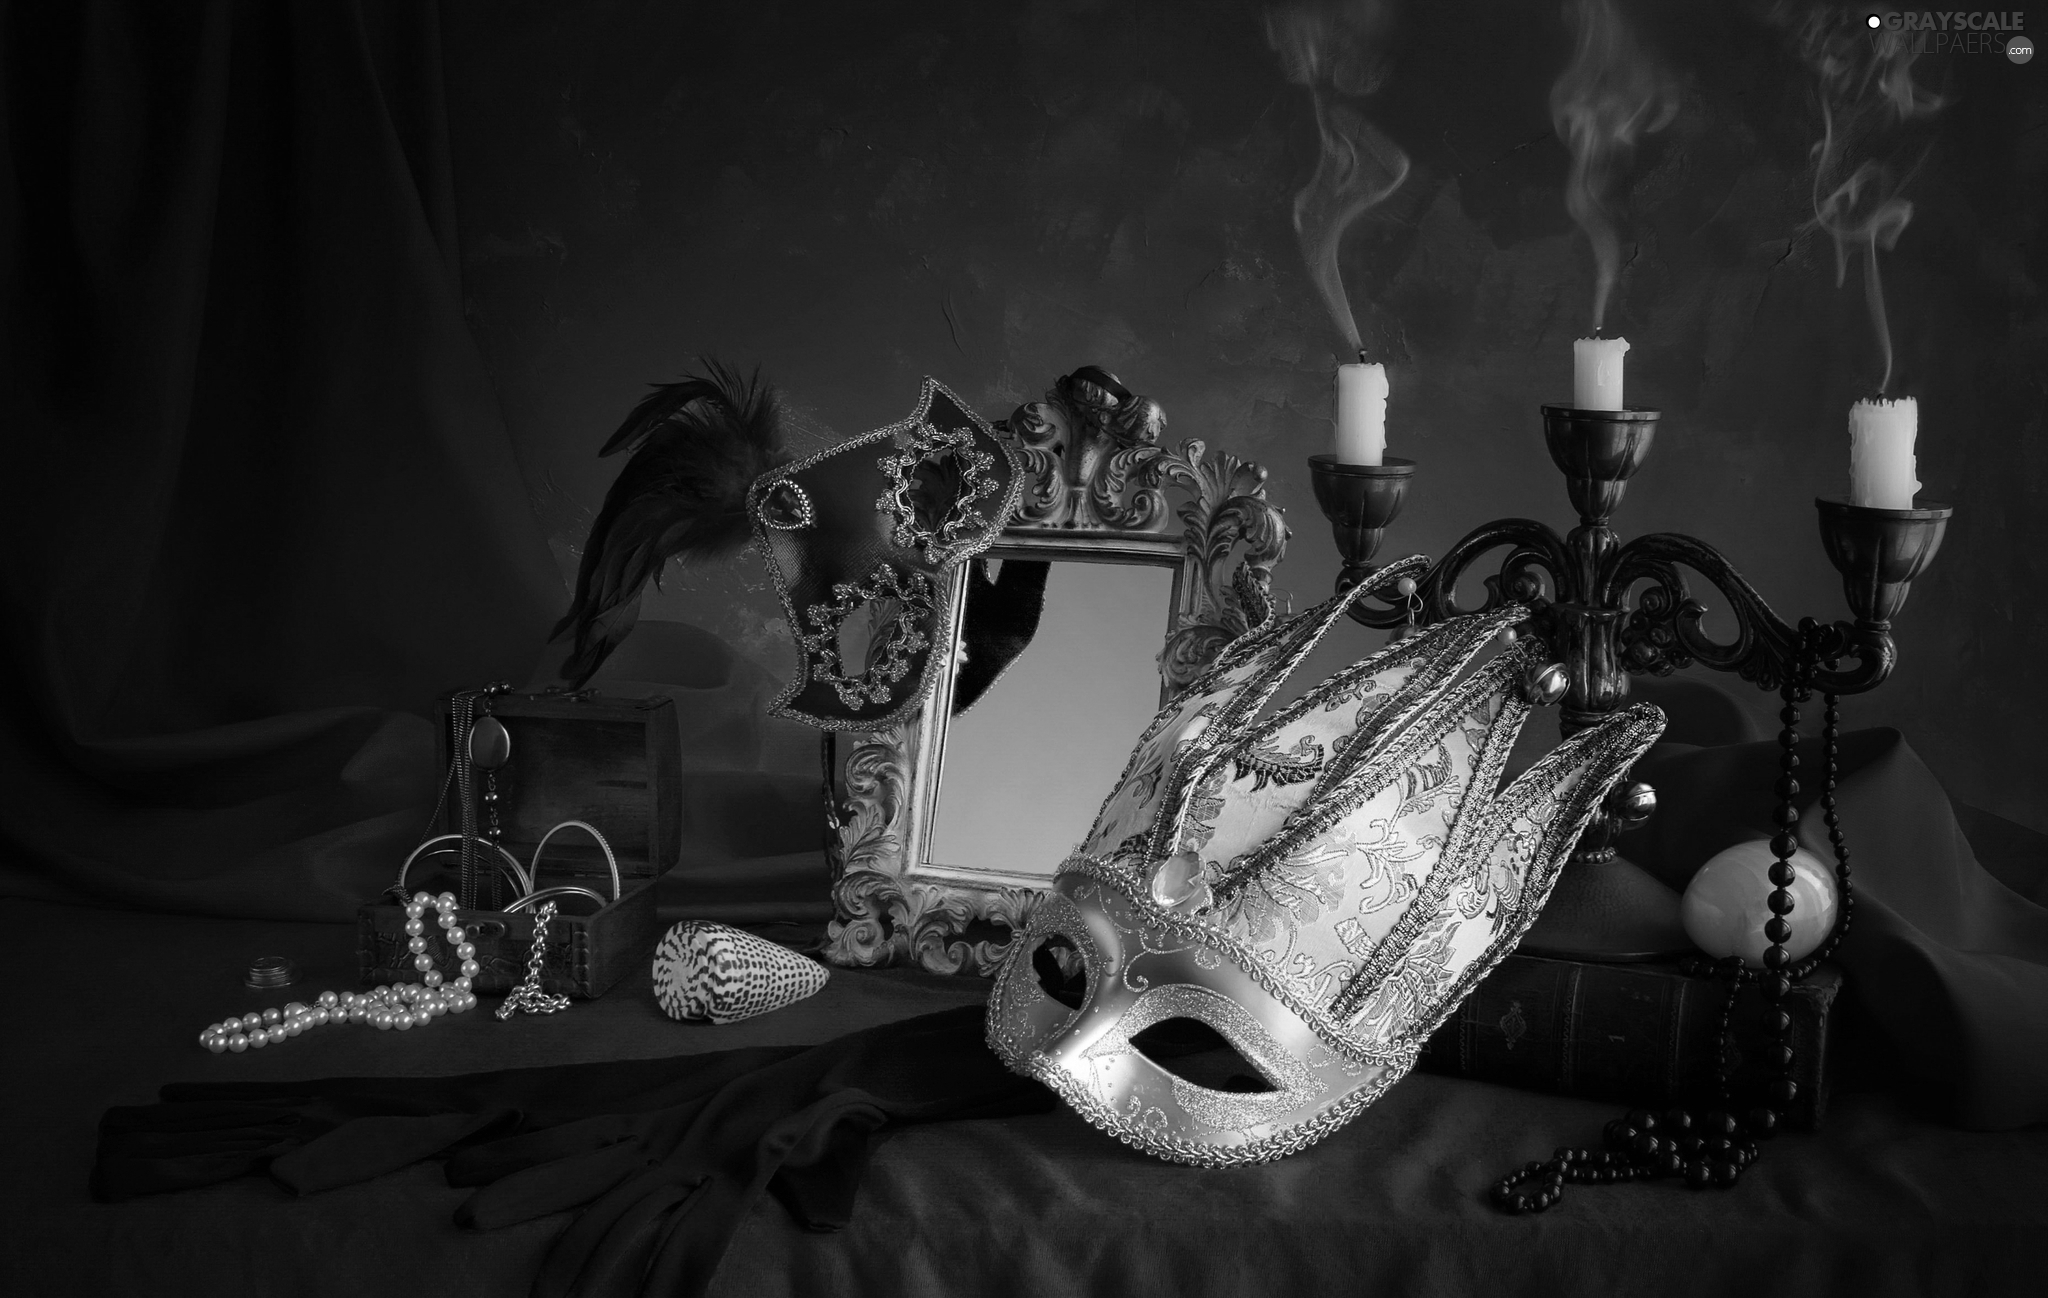 mirror, Candles, composition, jewellery, mask